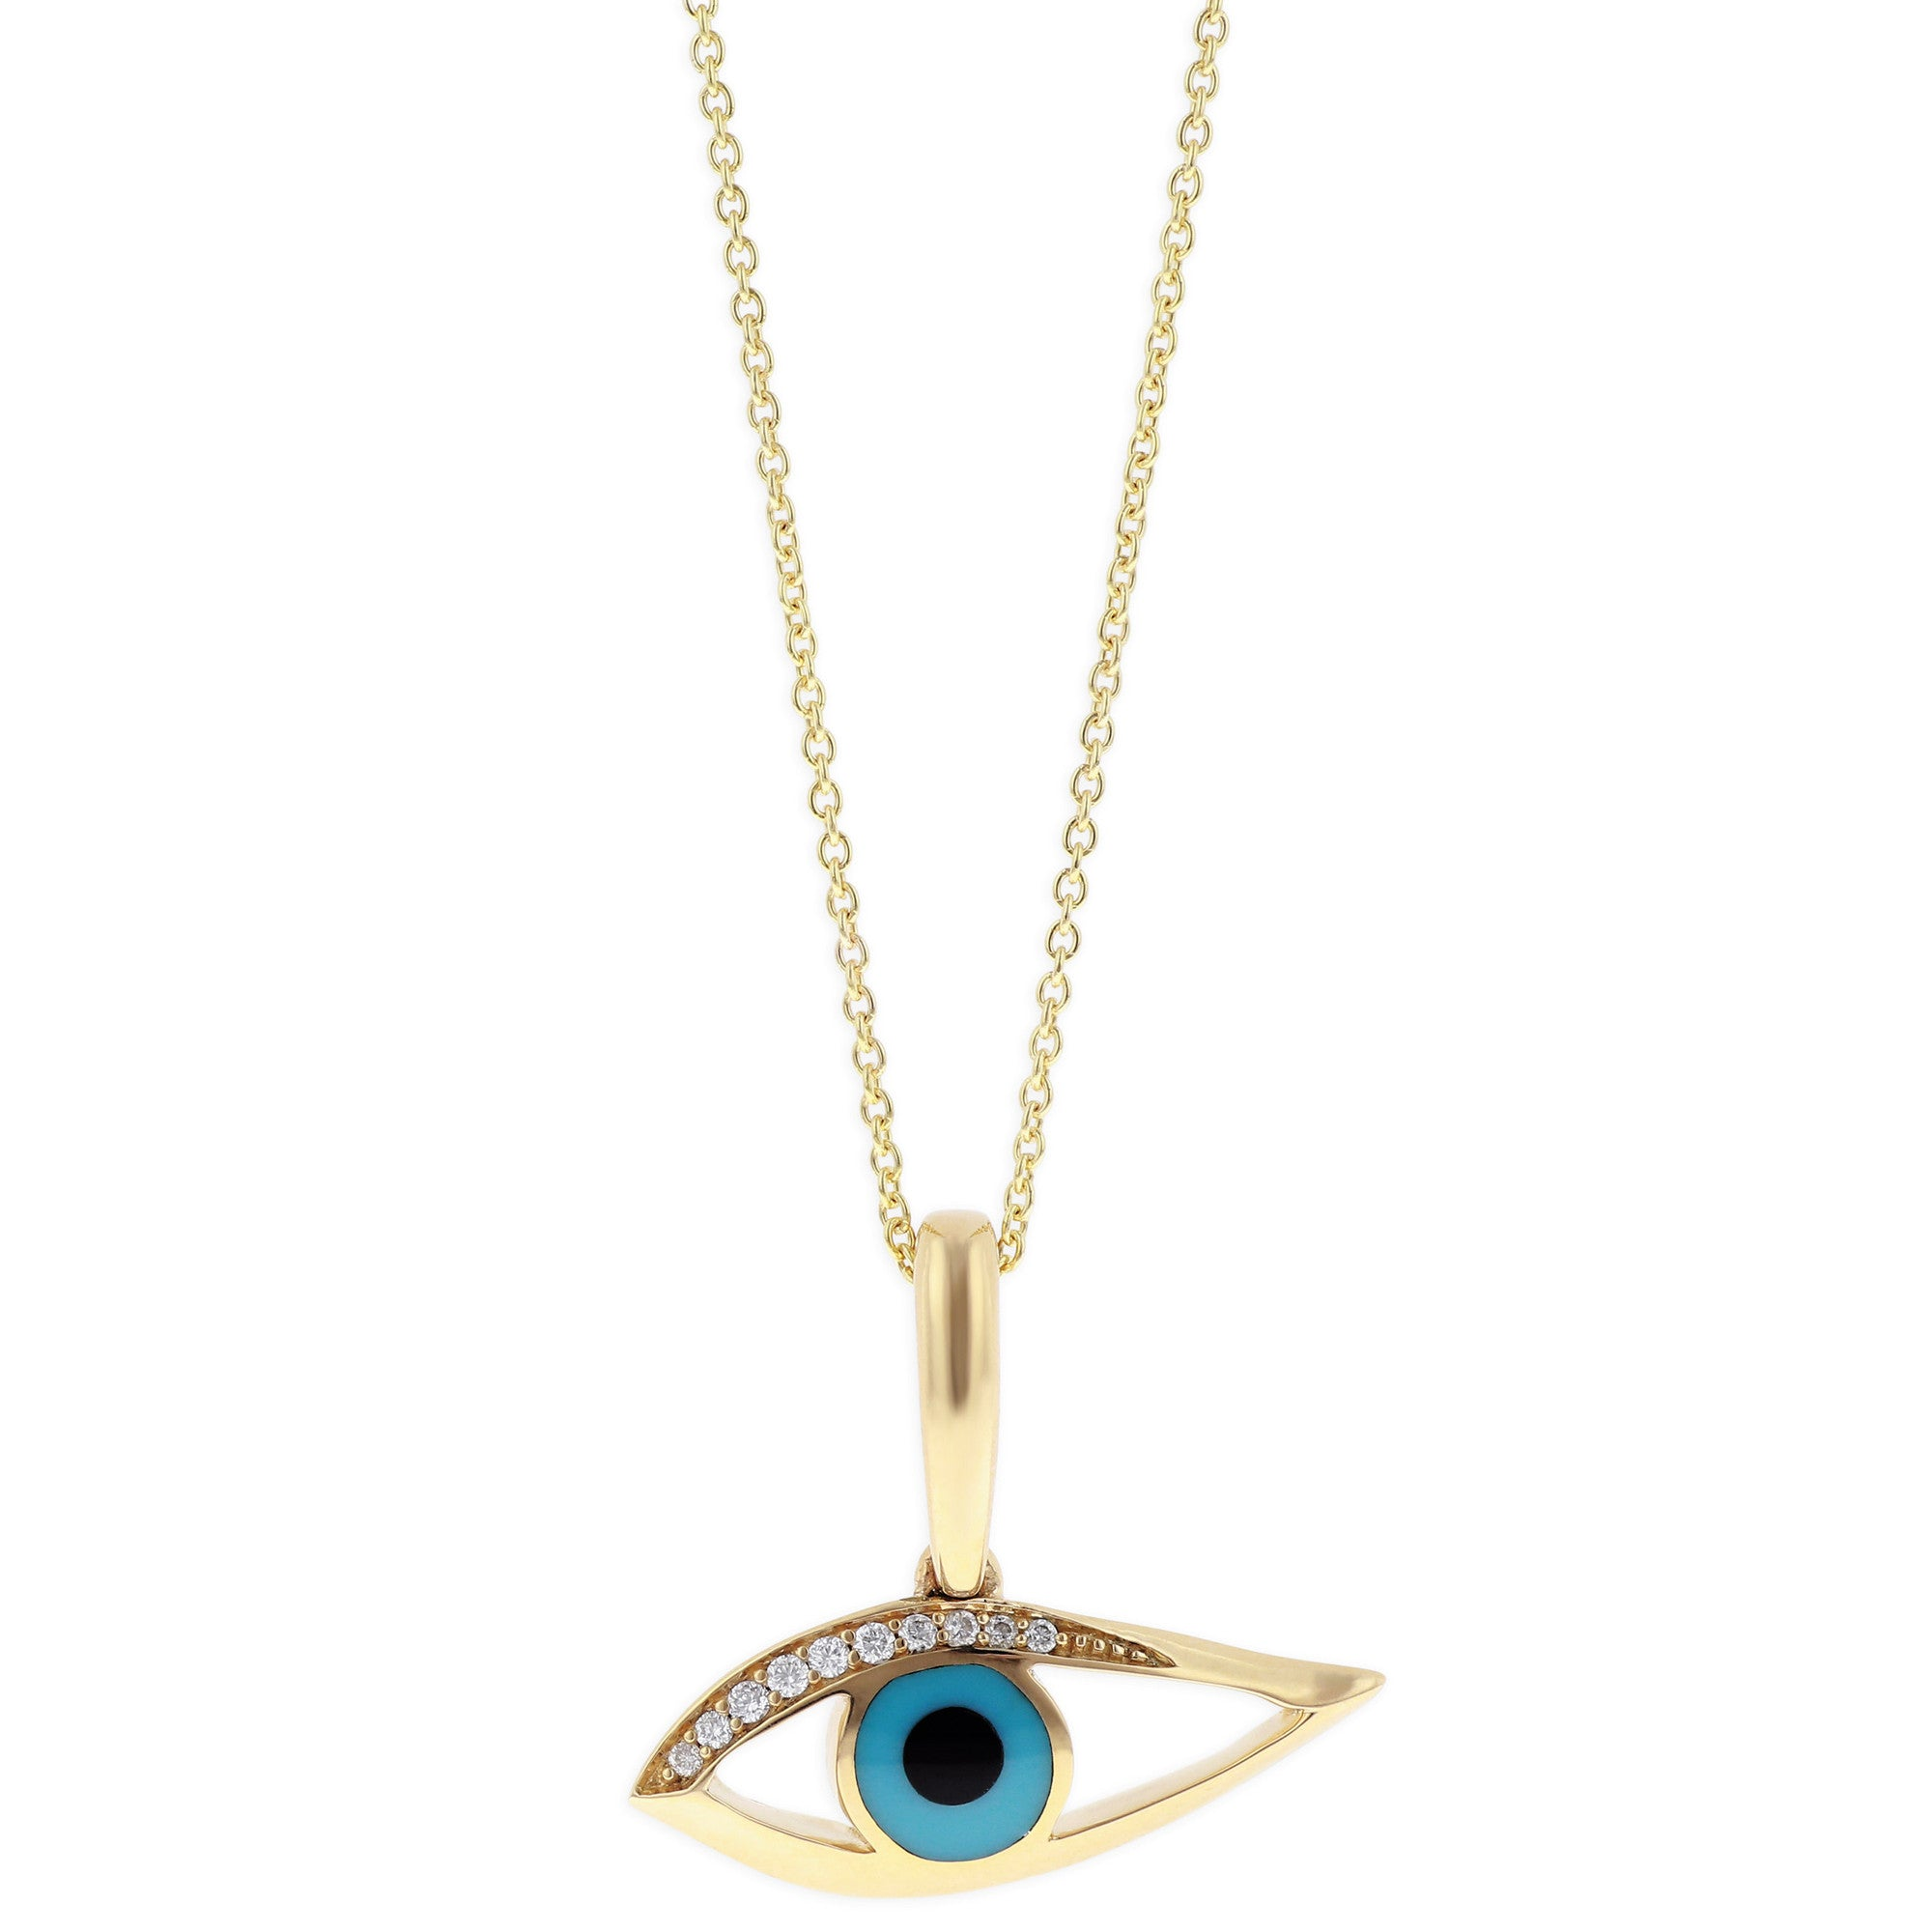 ksvhs evil with and eye dot jewellery pretty charms gold diamond charm necklace